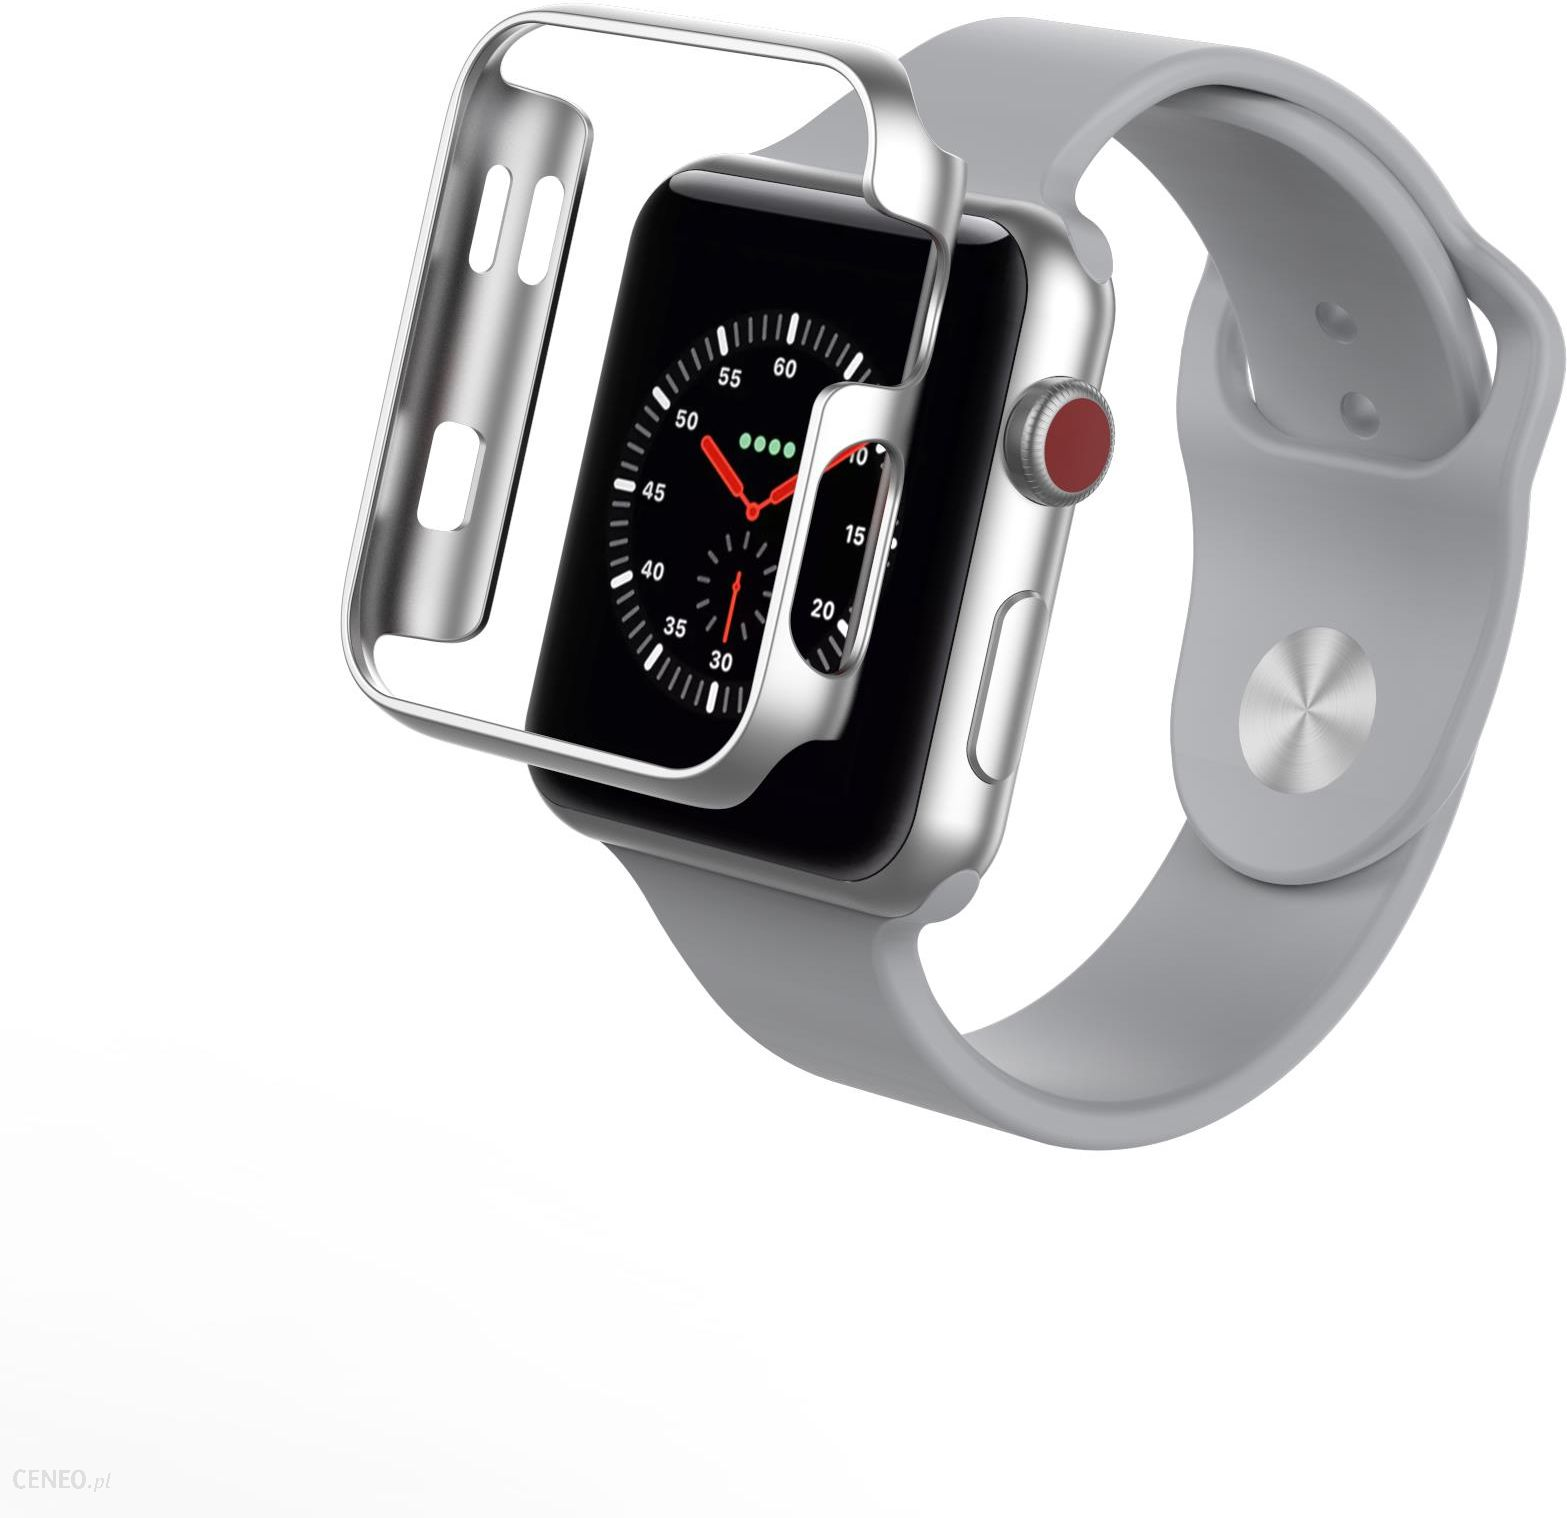 cheaper c6989 3c093 InvisibleShield Luxe Bumper Case for the Apple Watch